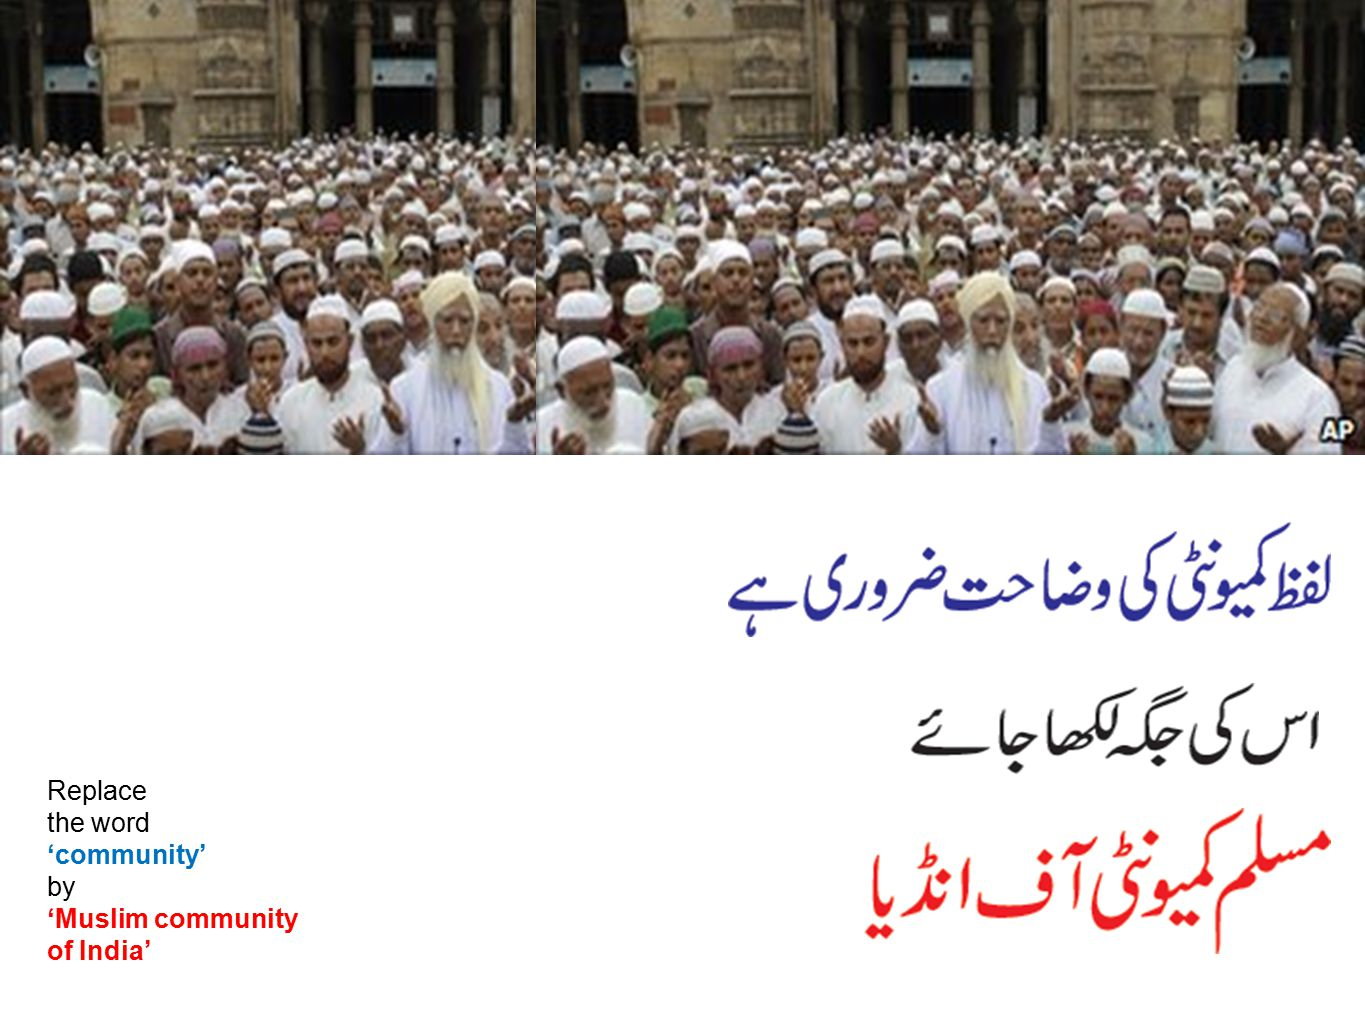 Replace the word 'community' by 'Muslim community of India'